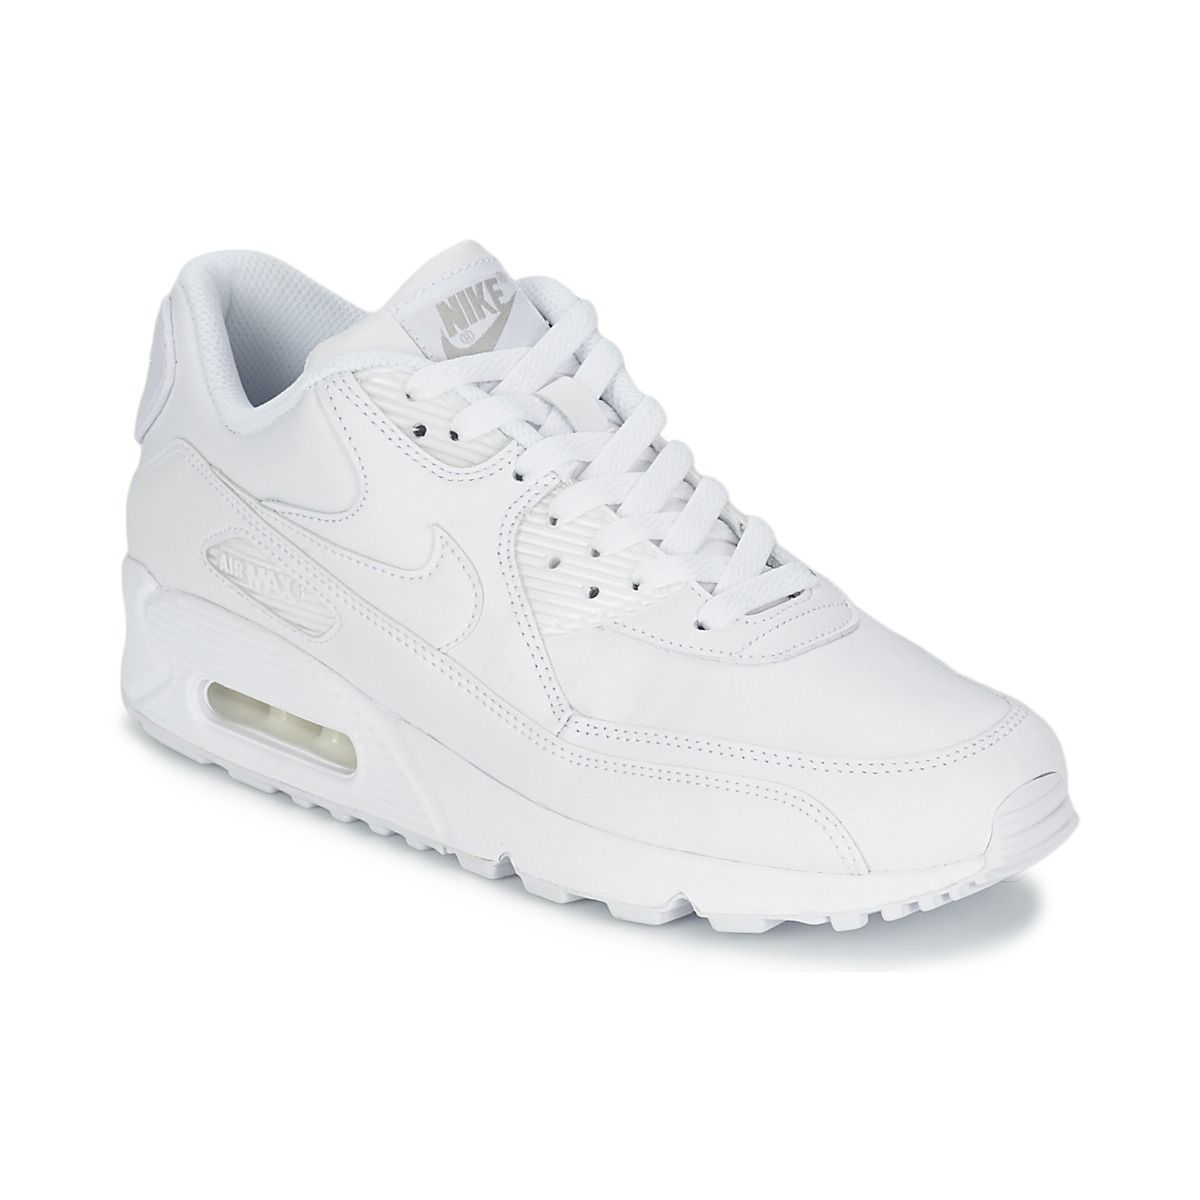 Baskets basses Nike AIR MAX 90 ULTRA ESSENTIAL W Blanc ...